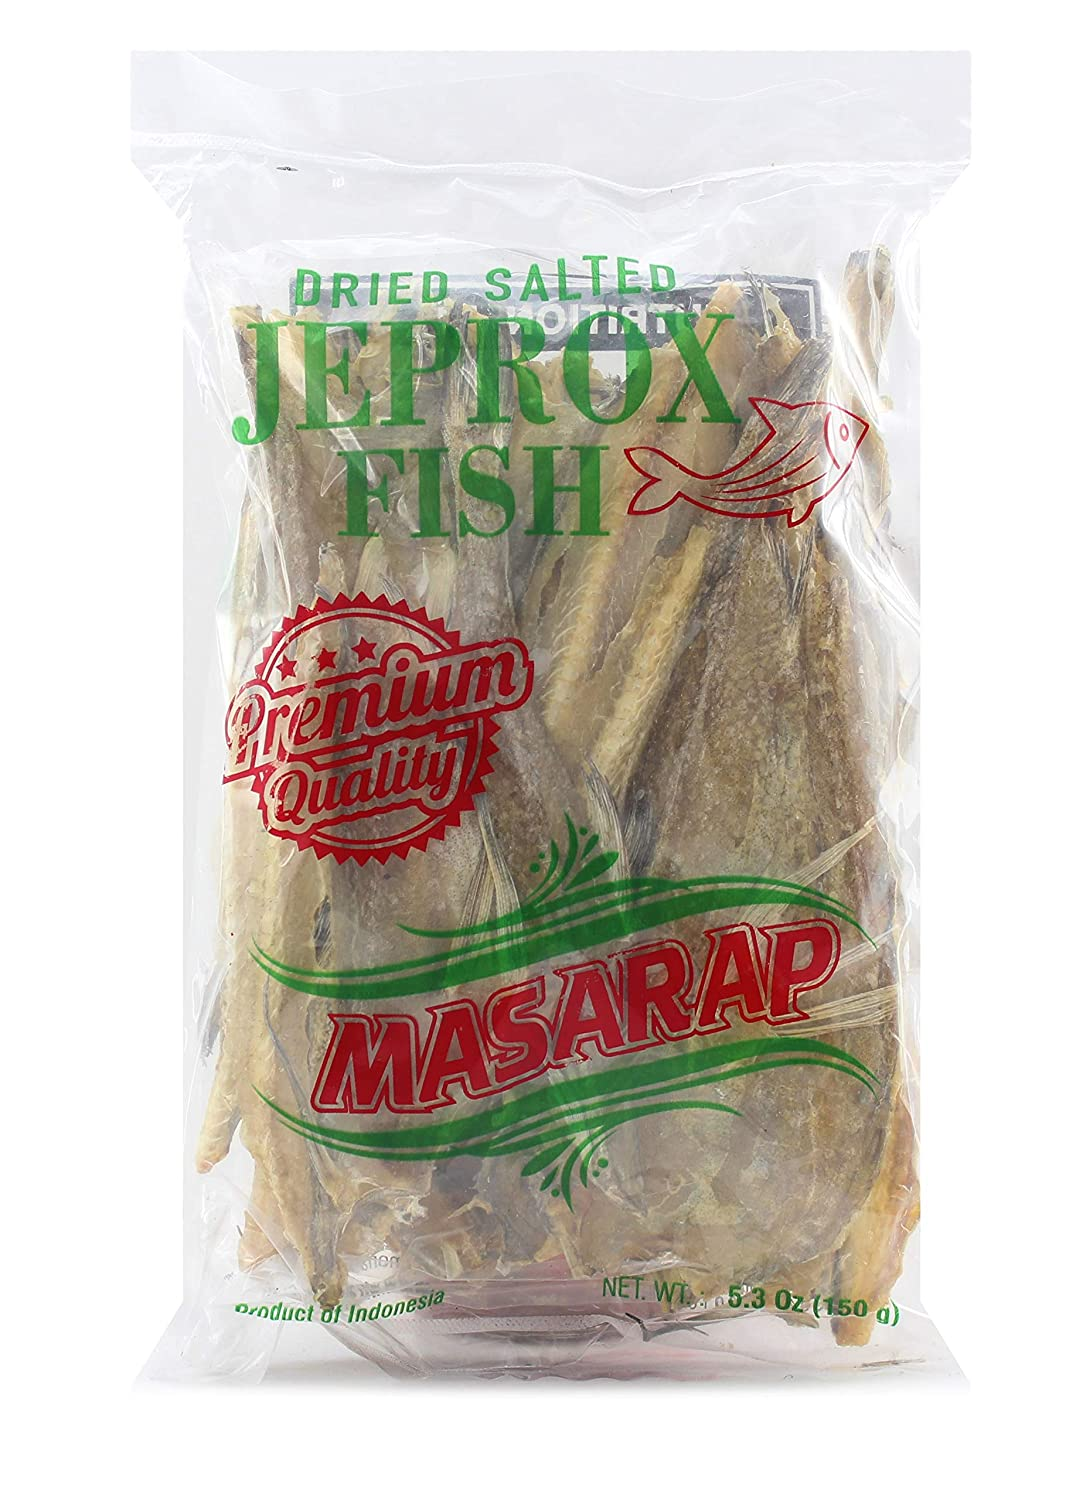 Masarap Dried Salted Jeprox   Tuyo   Daing Fish, 150 g (Pack of 1)